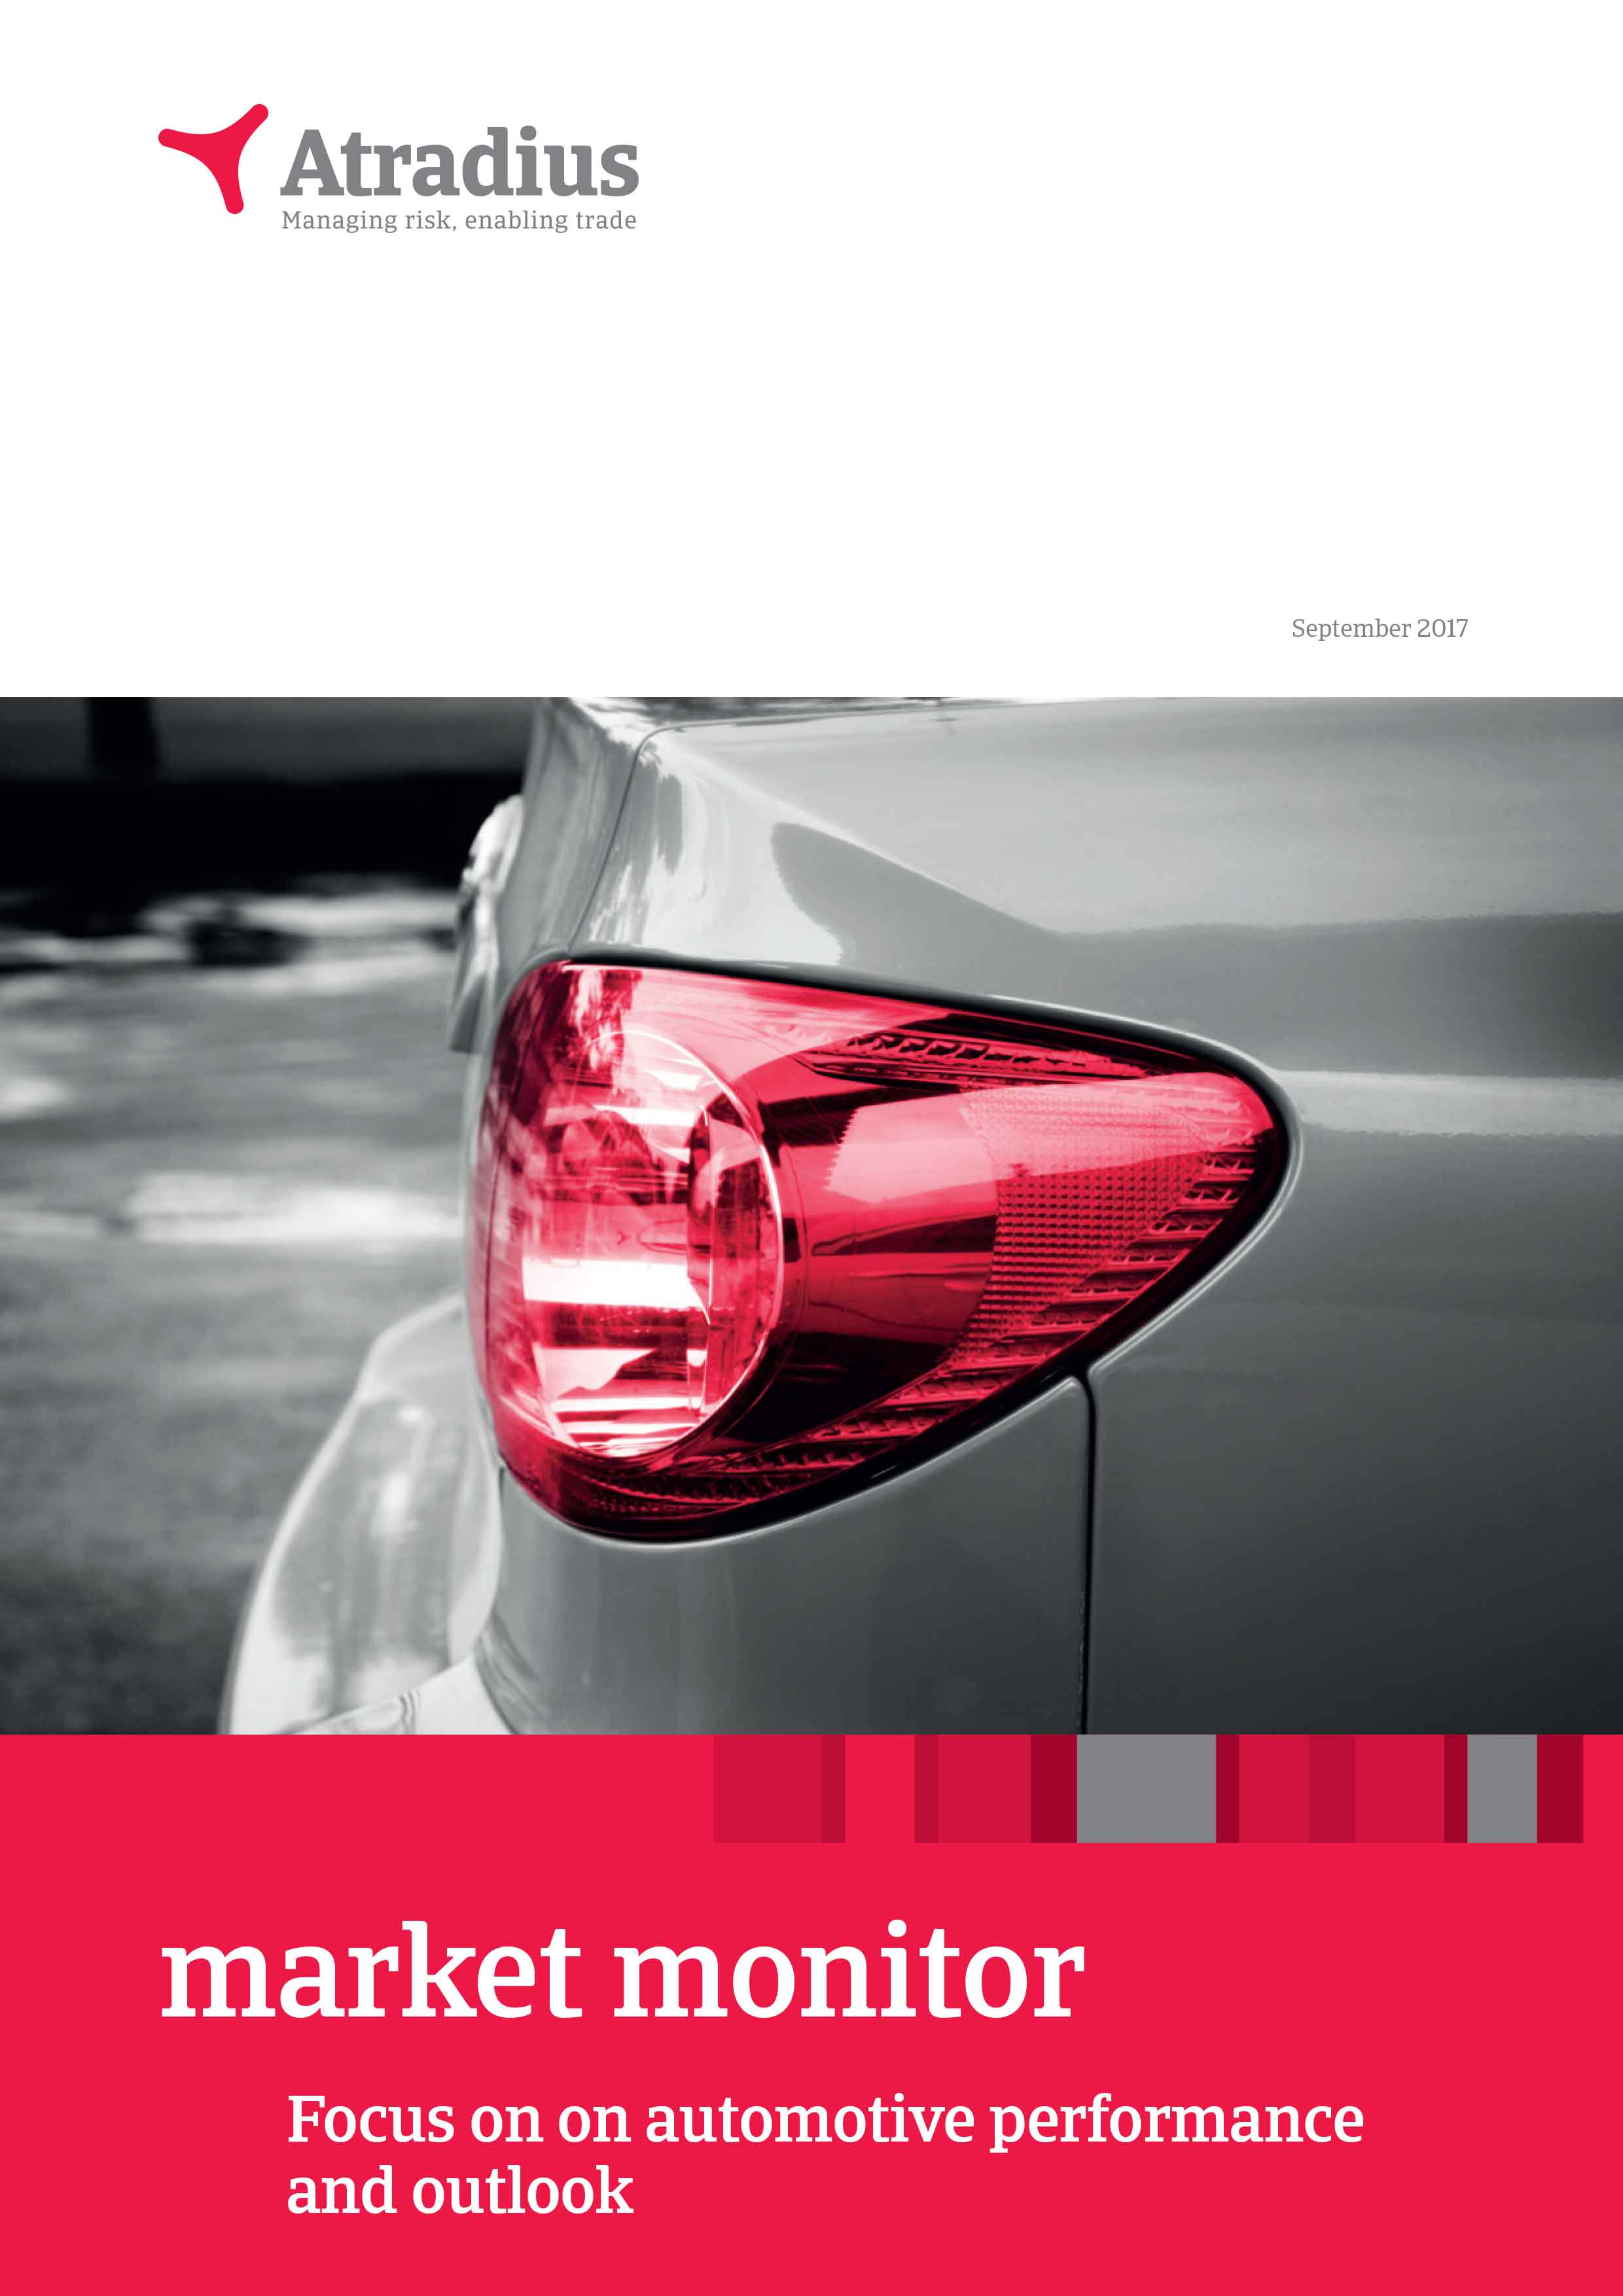 Focus on automotive performance and outlook